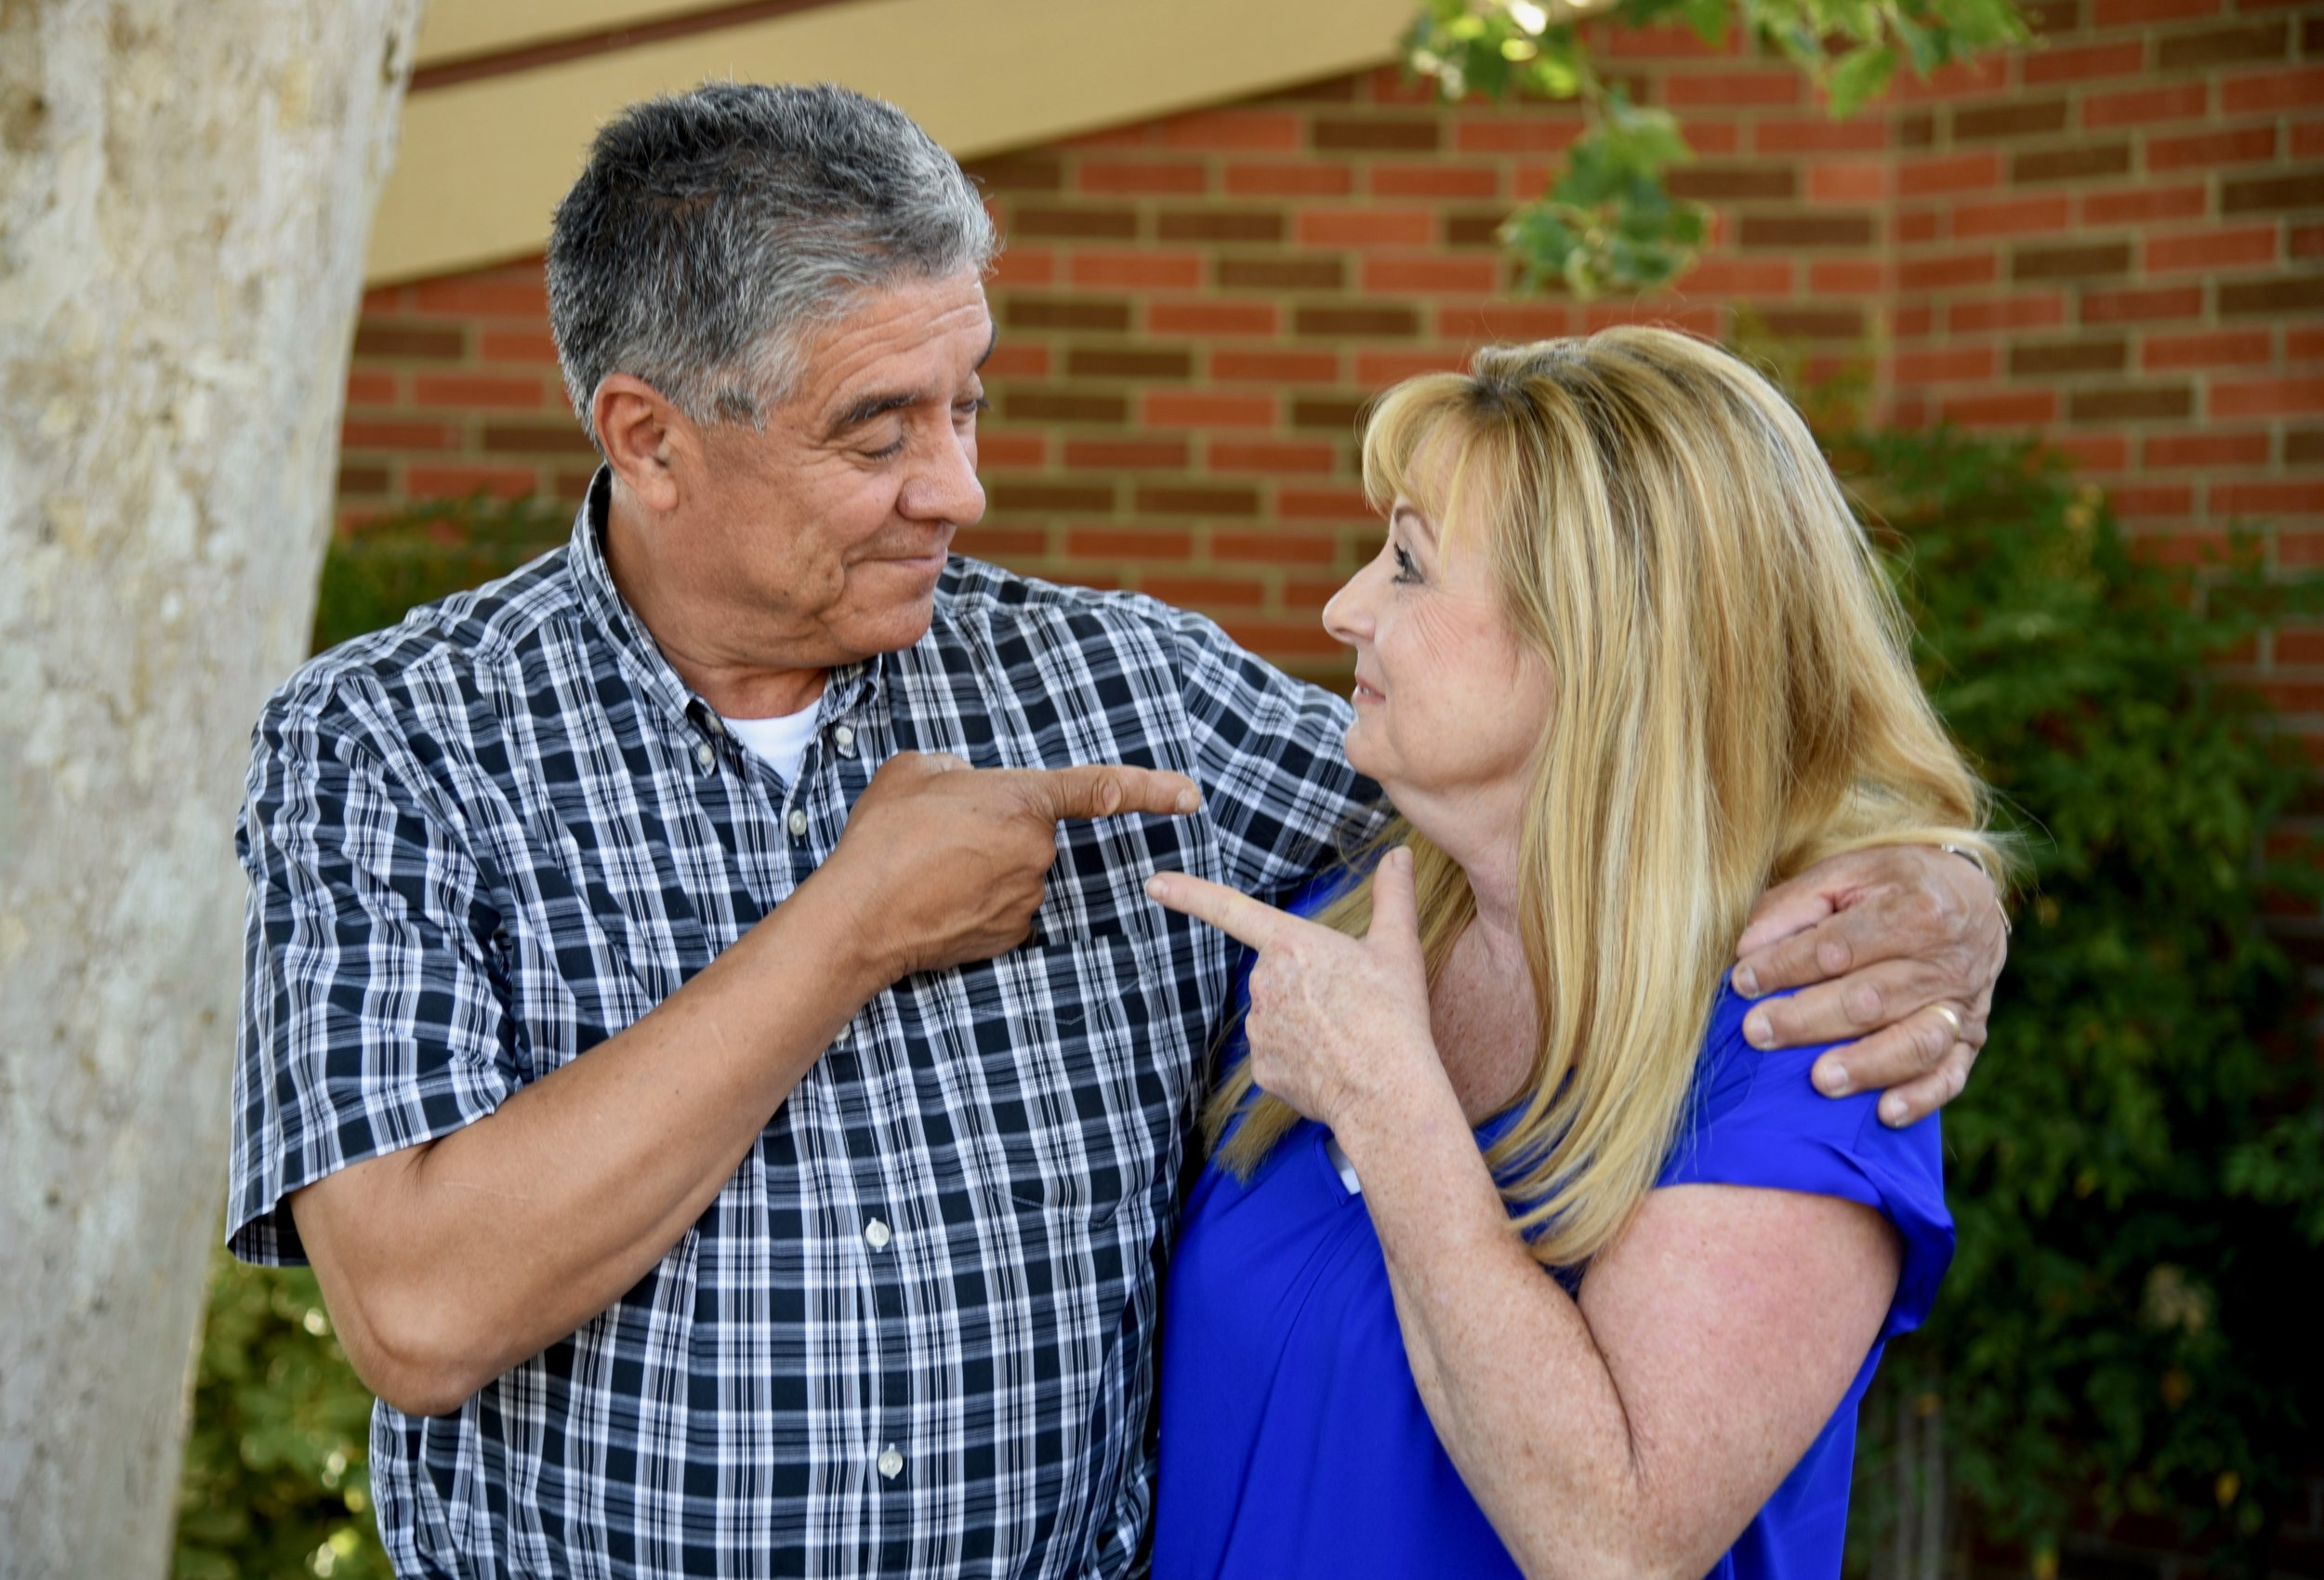 Faith Ortega - Why am I doing Ministry: I have always enjoyed helping and serving others.About me: I have been married for 33 years. I have 4 children, 7 grandchildren! I have been attending His Way for 20 years. Throughout the years I have had the privilege of serving as a greeter, playing with the babies in the nursery, and serving as a leader in the youth group. Currently I am serving in the church office and a community group leader with my husband, Robert.What you will find me doing on my day off: On my day off, there could a number of things you might find me doing… I could be playing with grandkids, making cakes, doing crafts or just catching up!Contact Information: faith@ehisway.org